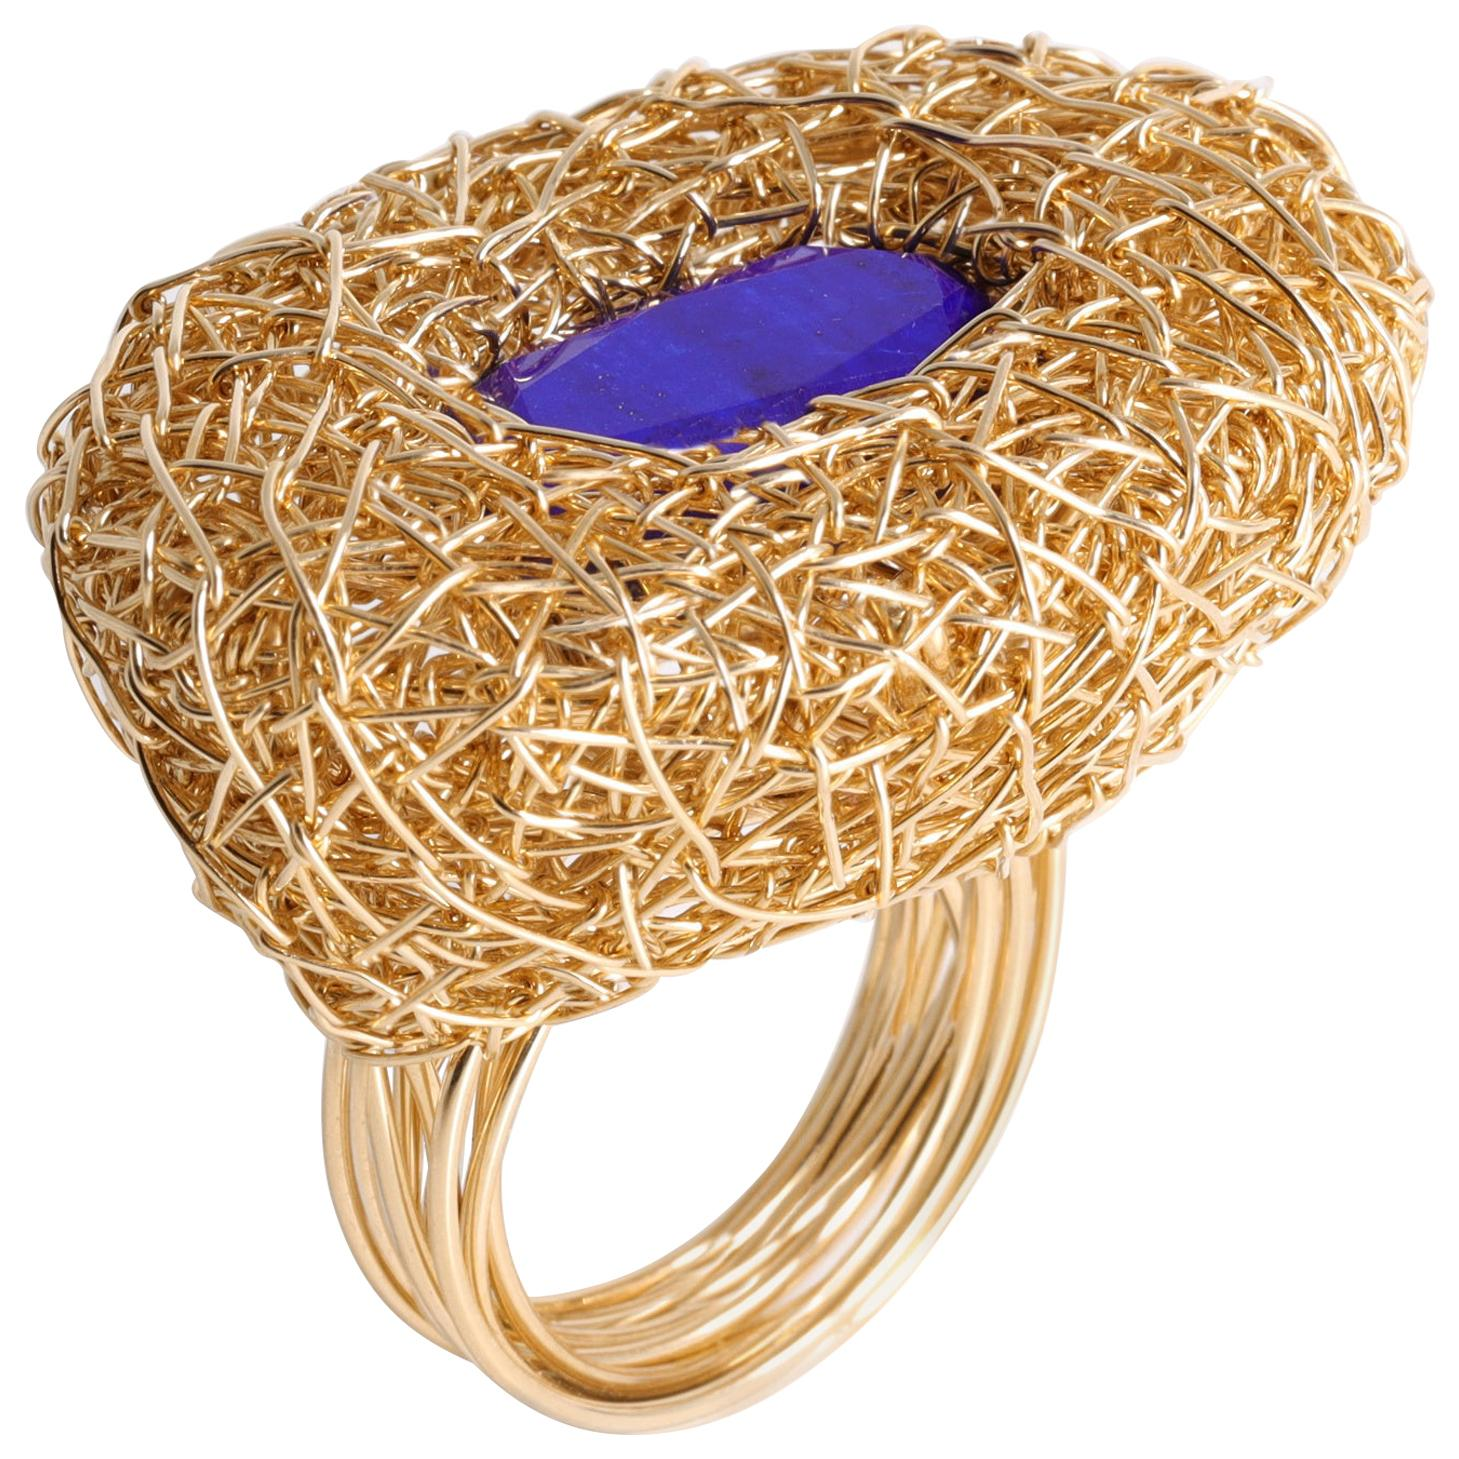 Super Blue Lapis Lazuli 14 k Gold F Woven Contemporary Cocktail Ring by Artist